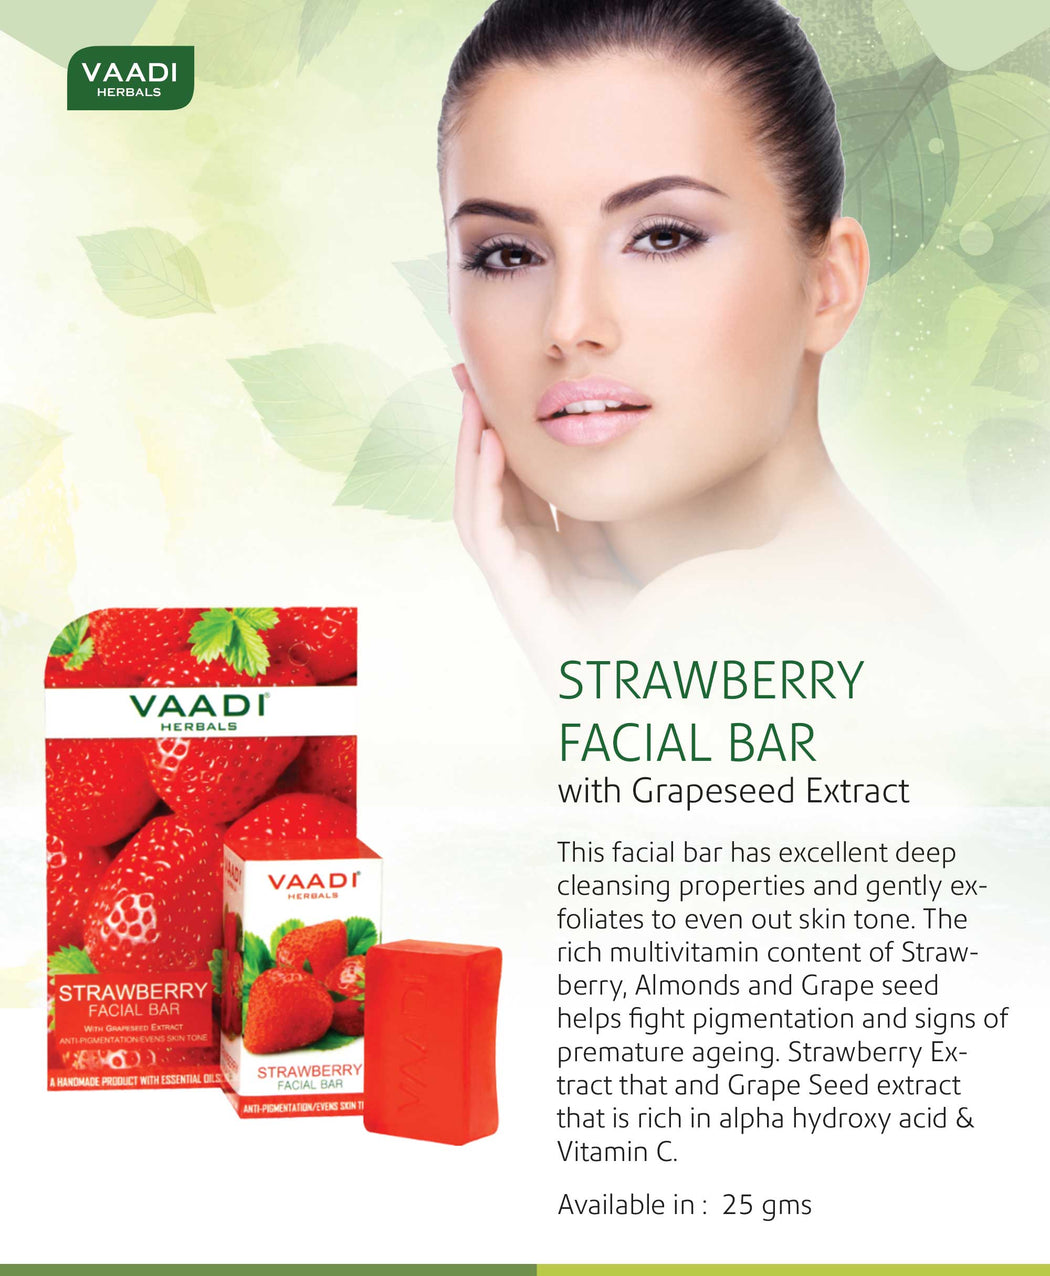 Pack of 6 Strawberry Facial Bars with Grapeseed Extract (25gms x 6)